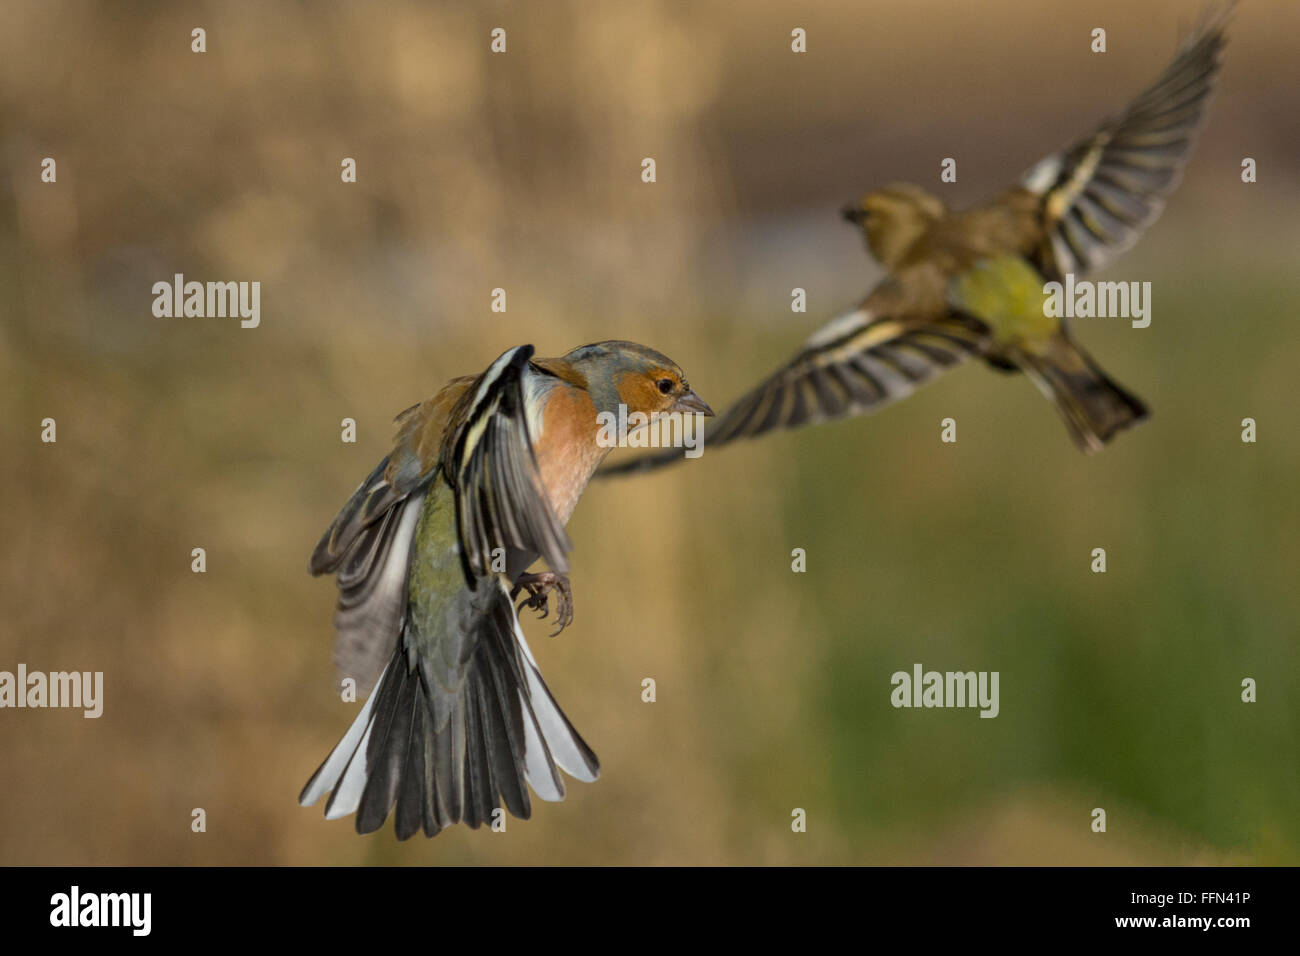 Chaffinches in flight - Stock Image